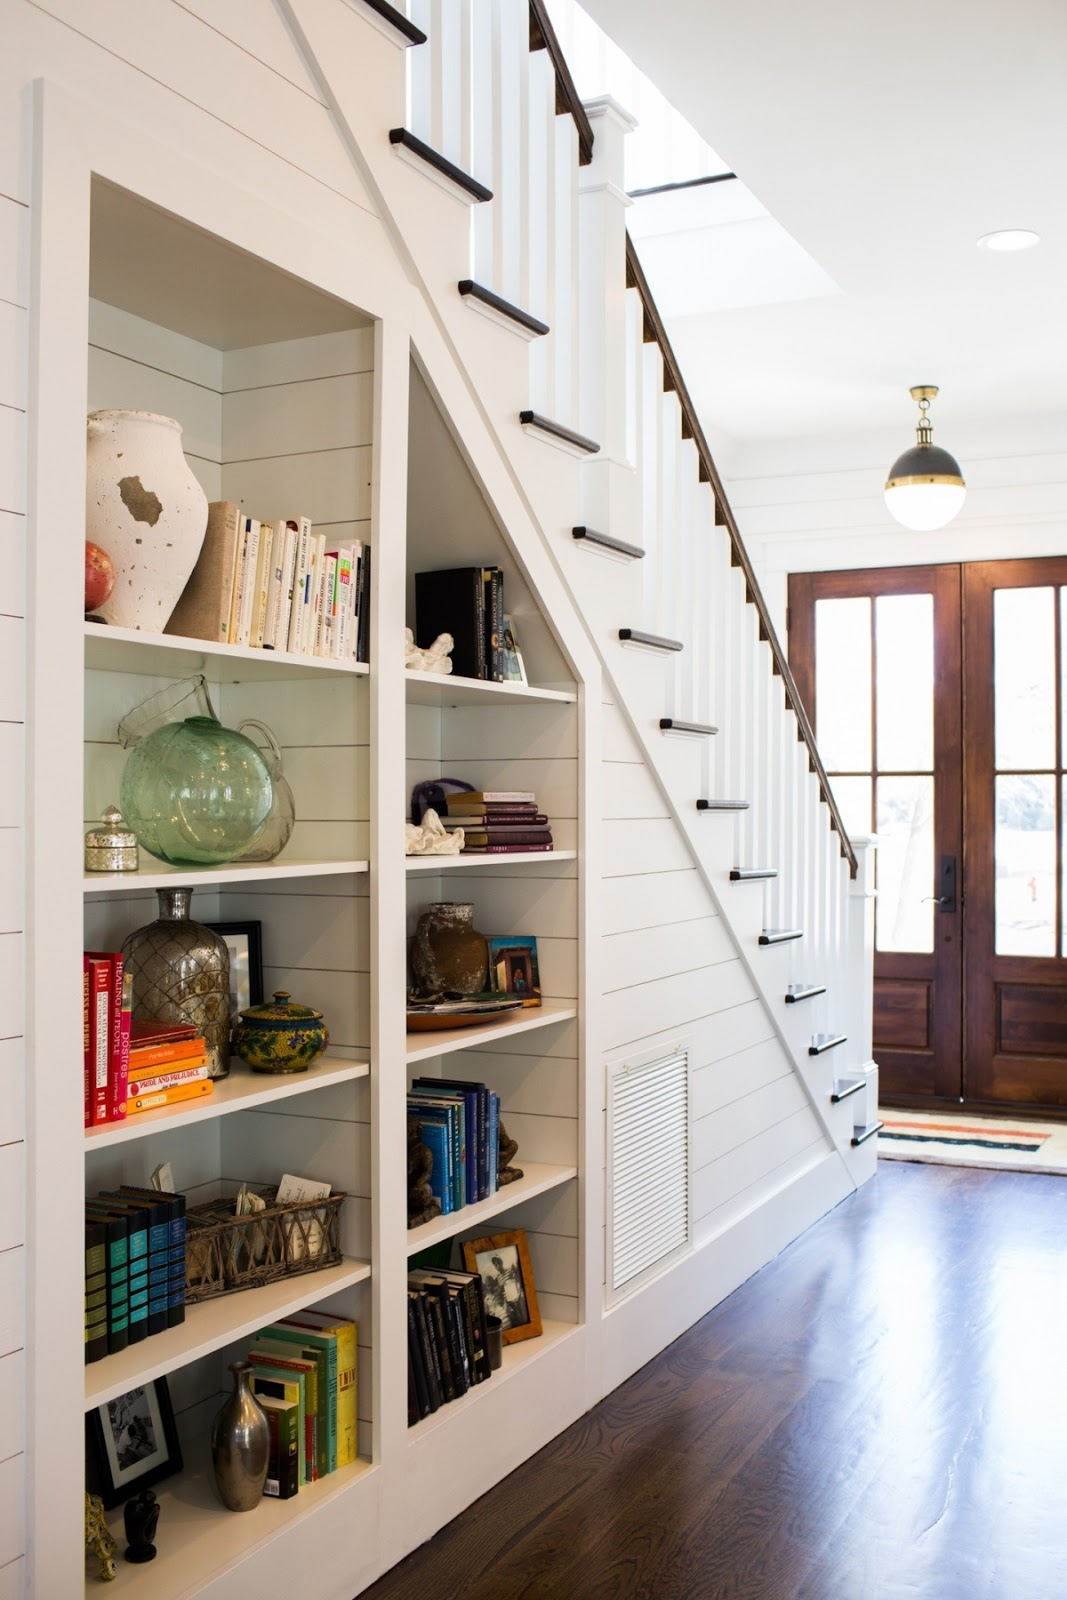 Superb Bookshelves Under The Stairs